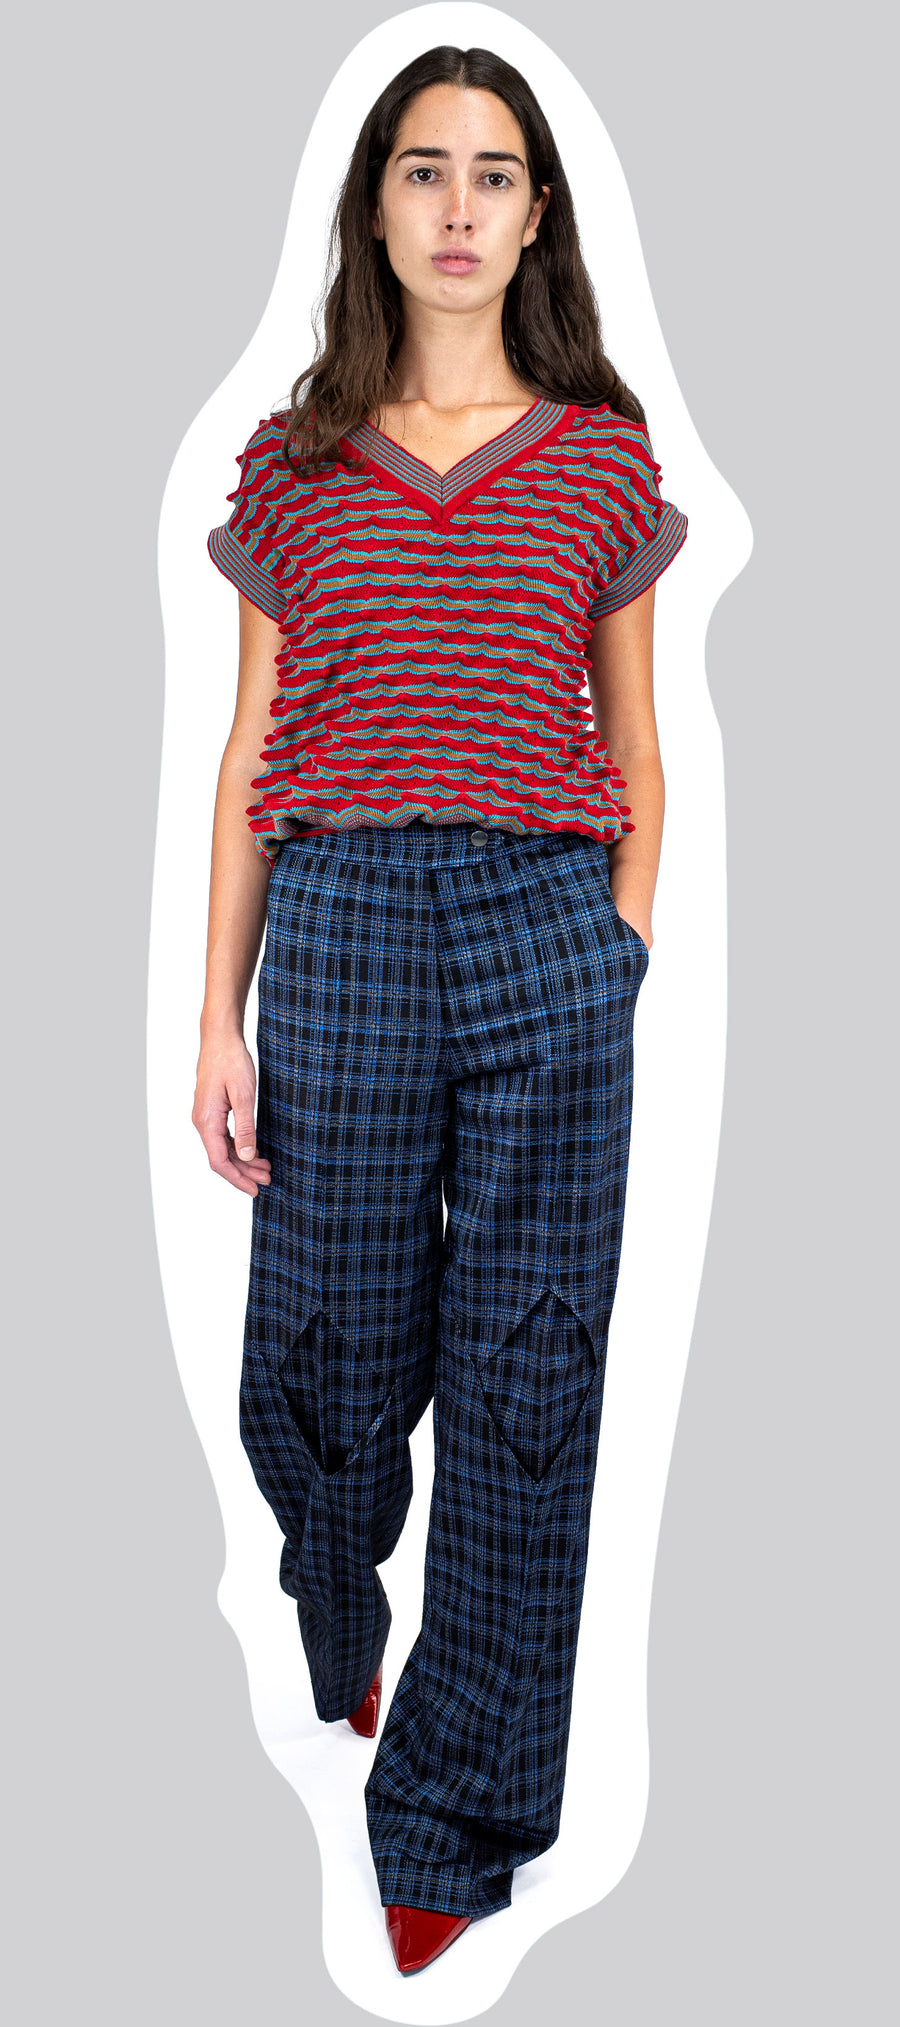 DARTED DIAMOND TROUSER INDIGO TARTAN AW20